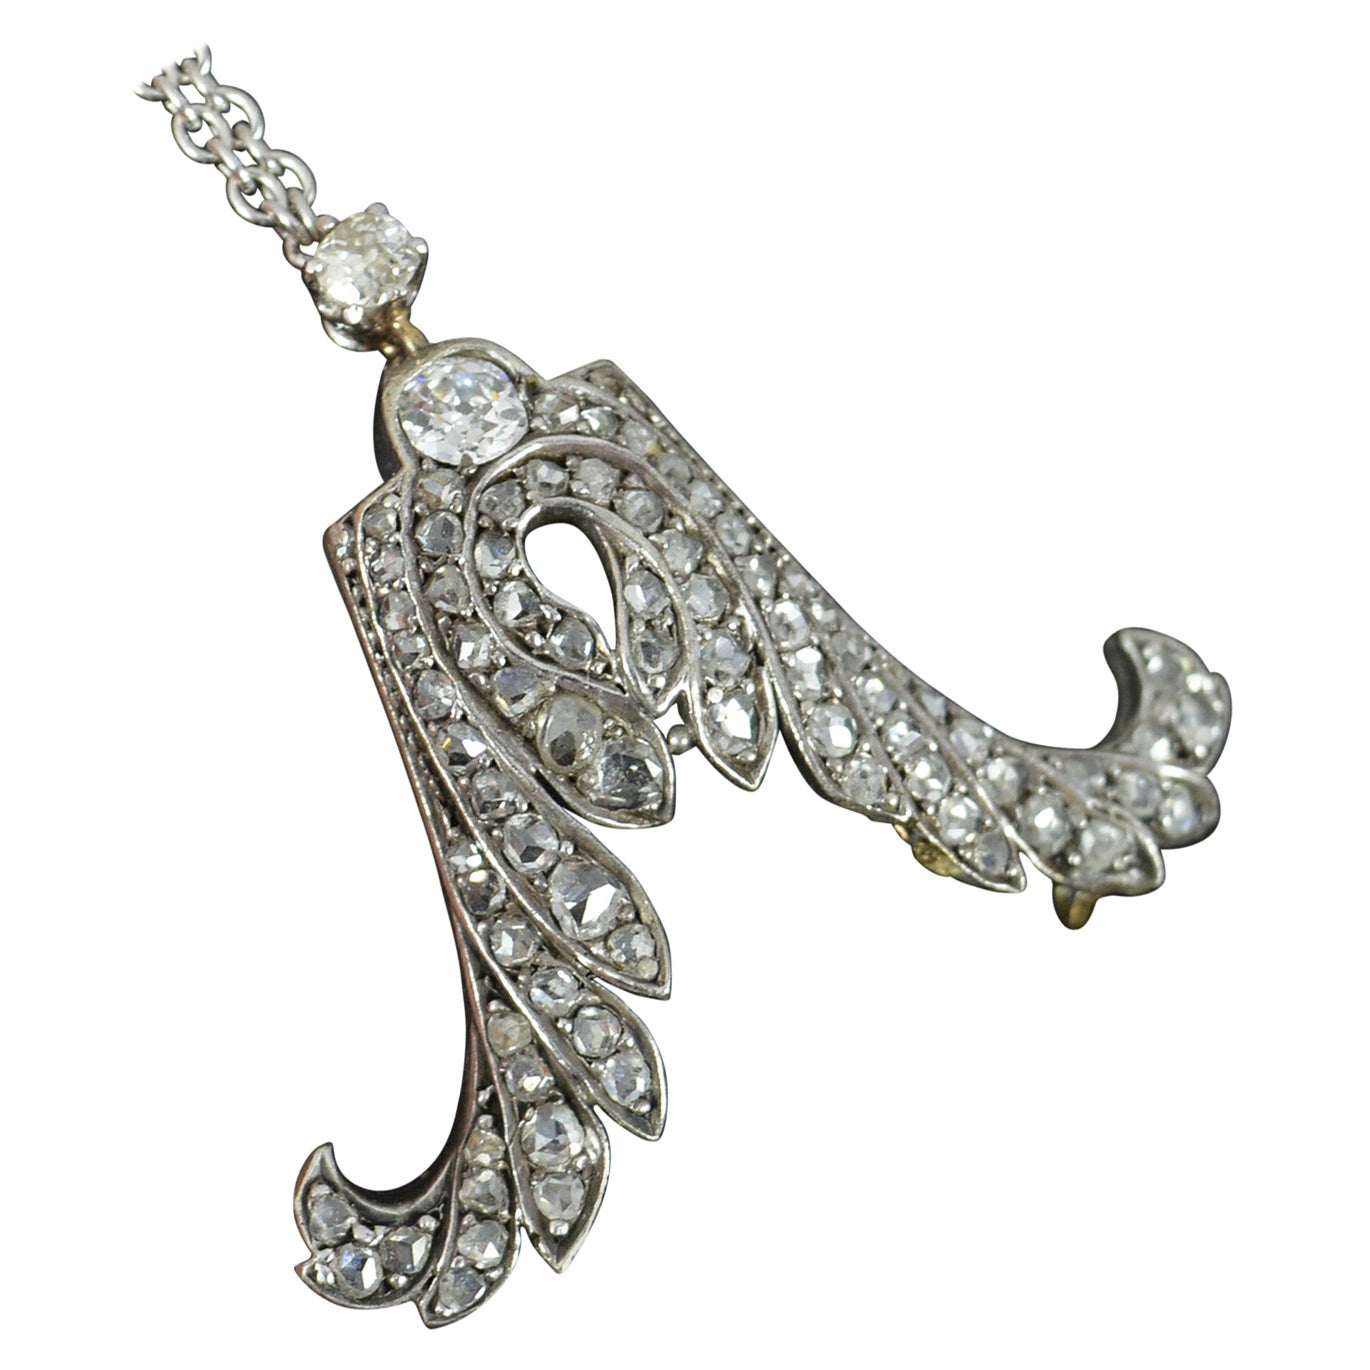 18 Carat White Gold Old and Rose Cut Diamond Double Wing Necklace Pendant